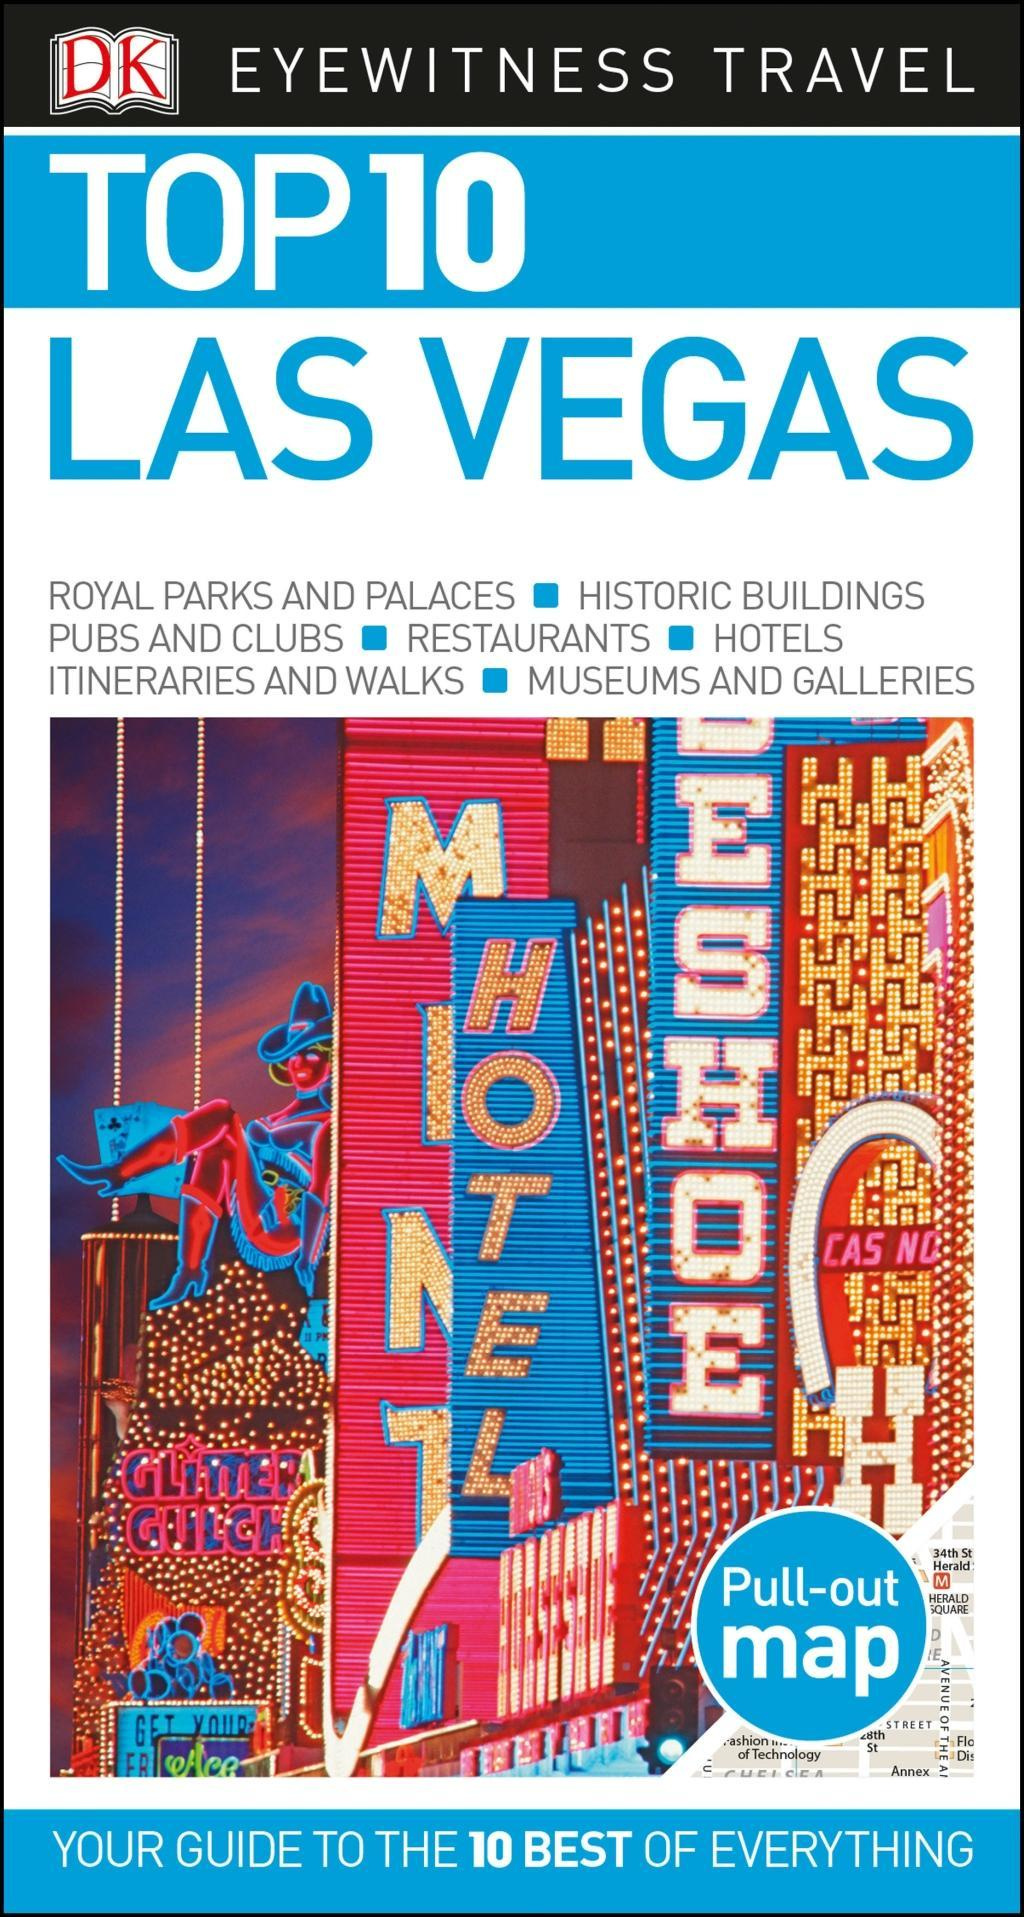 Top 10 Las Vegas (DK Eyewitness Top 10 Travel Guides) by Dk Travel, ISBN: 9781465468772